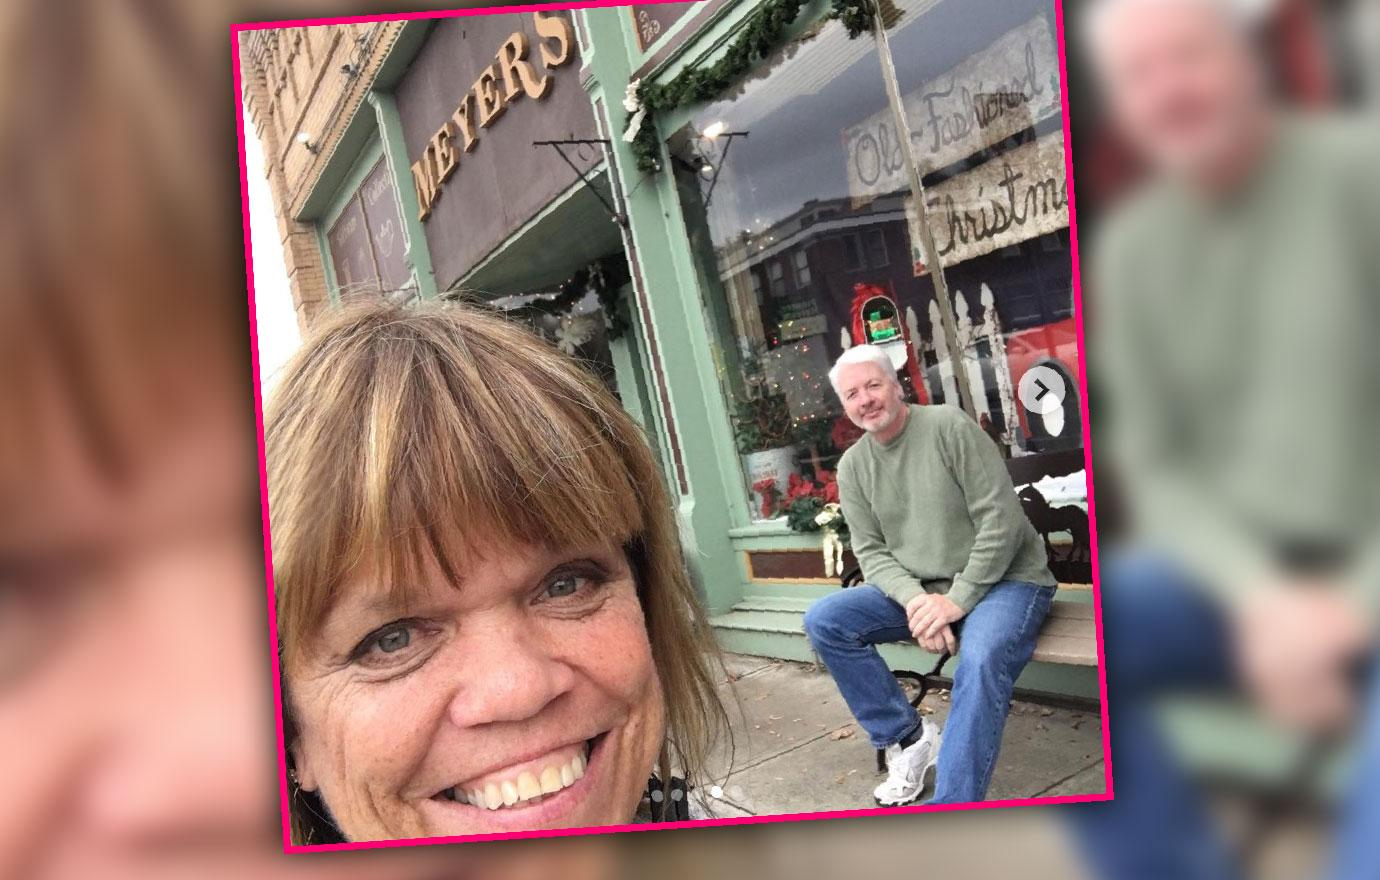 Amy Roloff Goes On Holiday Road Trip To See Boyfriend Chris Marek Relatives